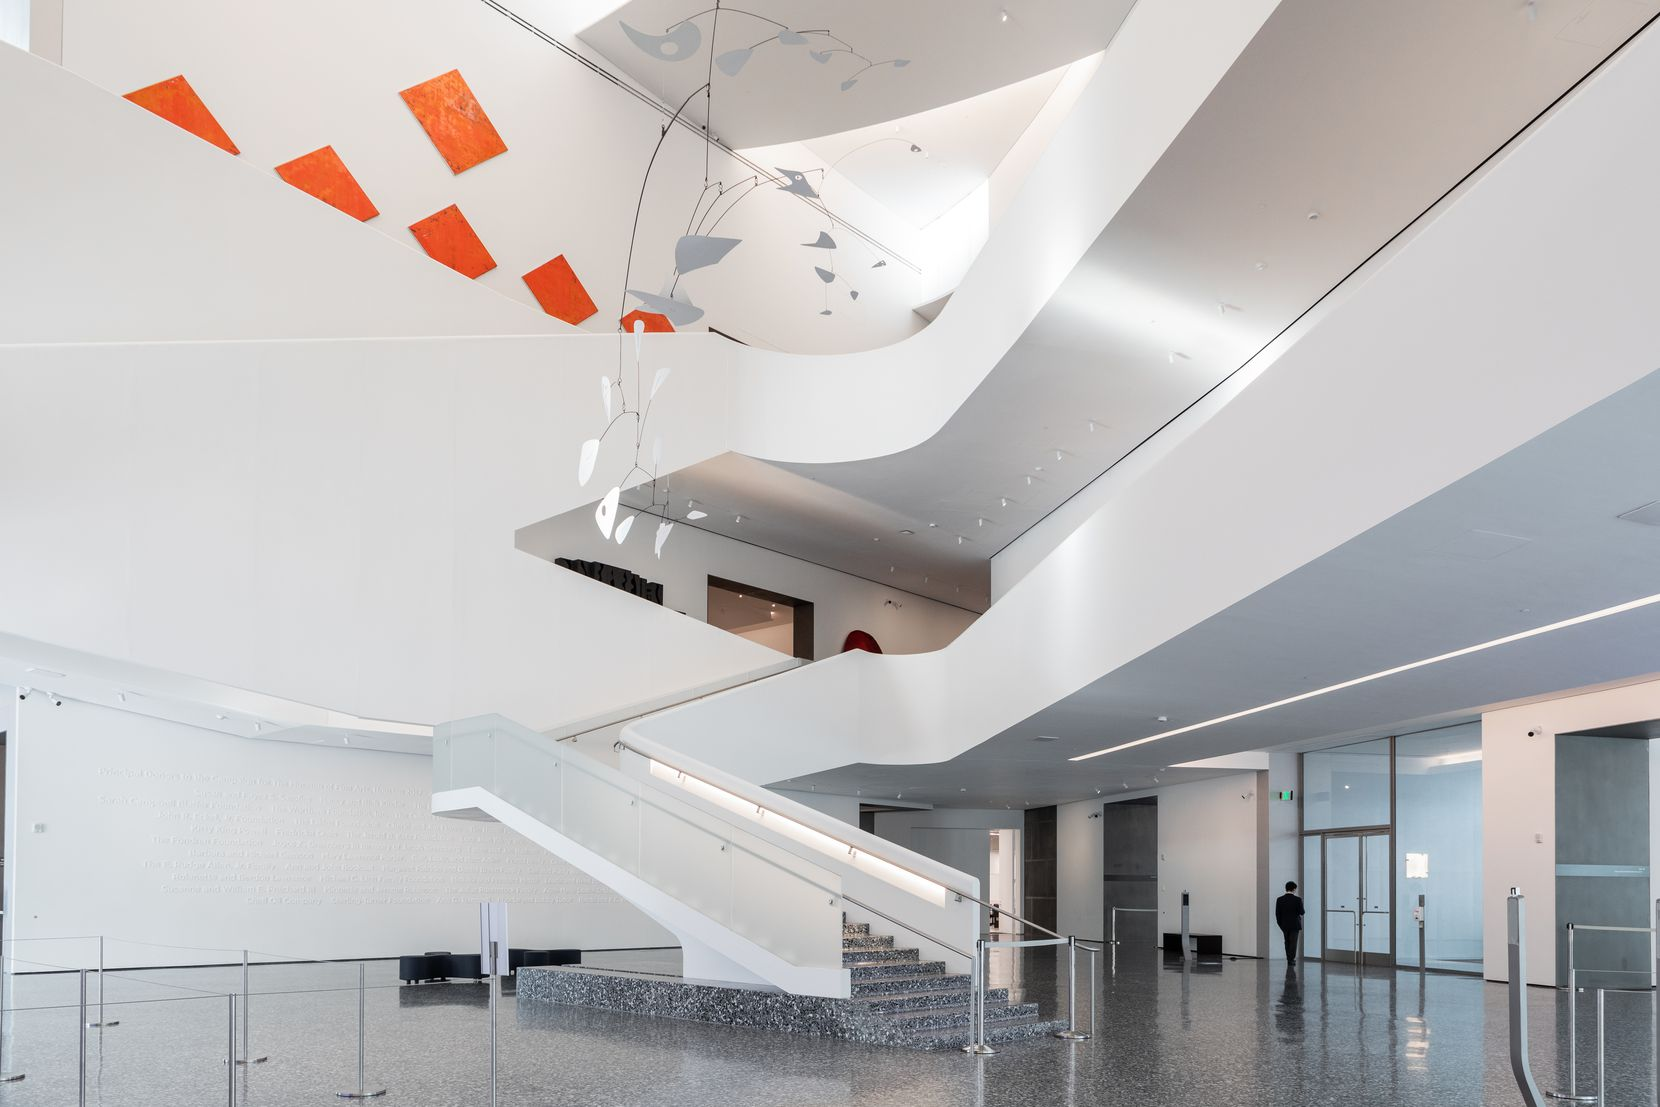 Galleries ring the space above the Kinder Building's atrium.